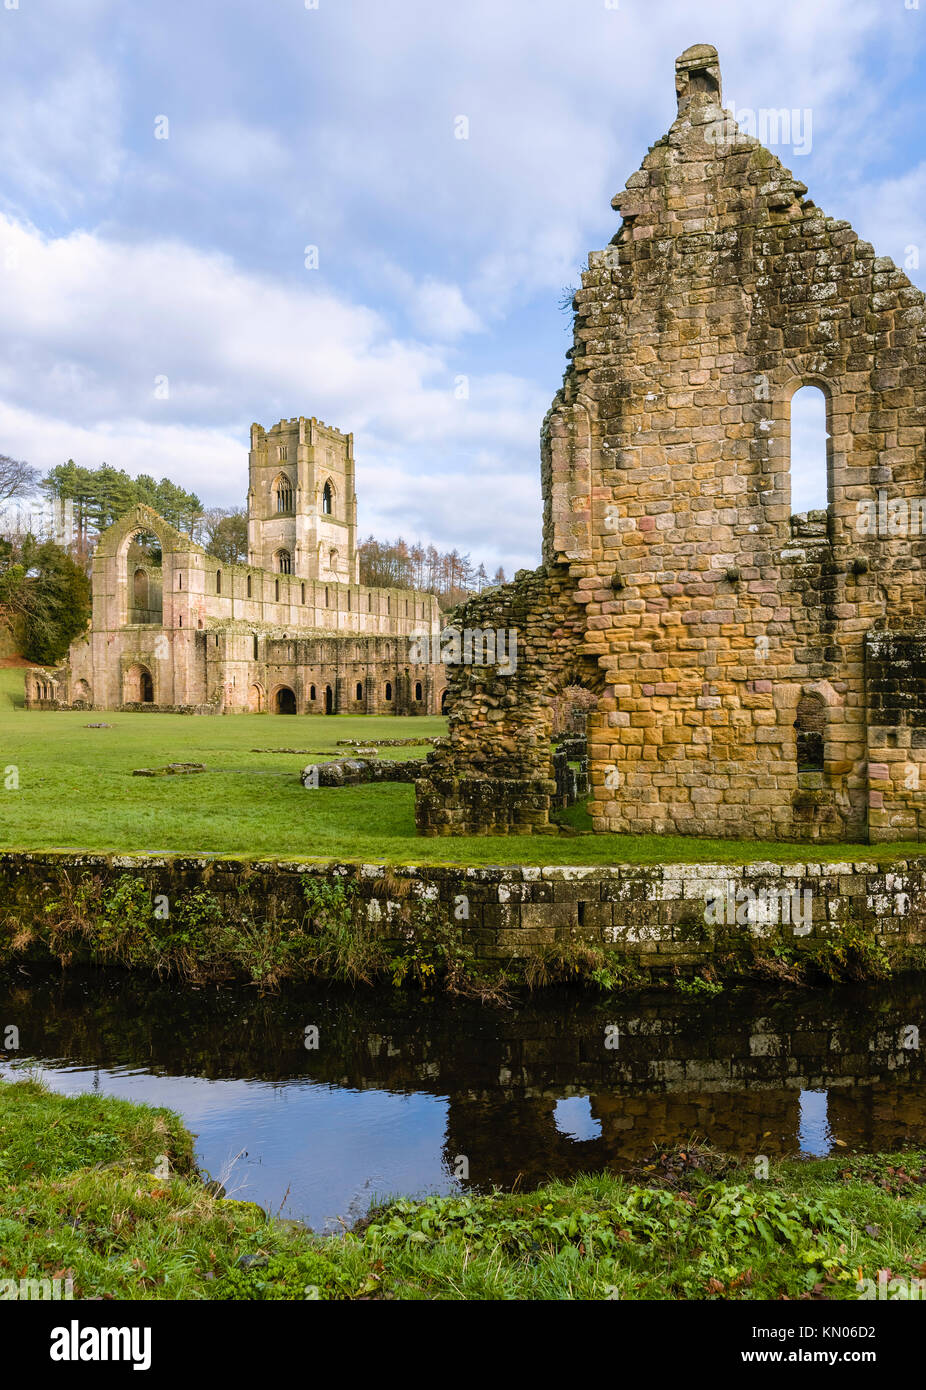 The ruins of Fountains Abbey on a fine autumn morning as viewed from across the river Skell, Ripon, Yorkshire, UK. Stock Photo